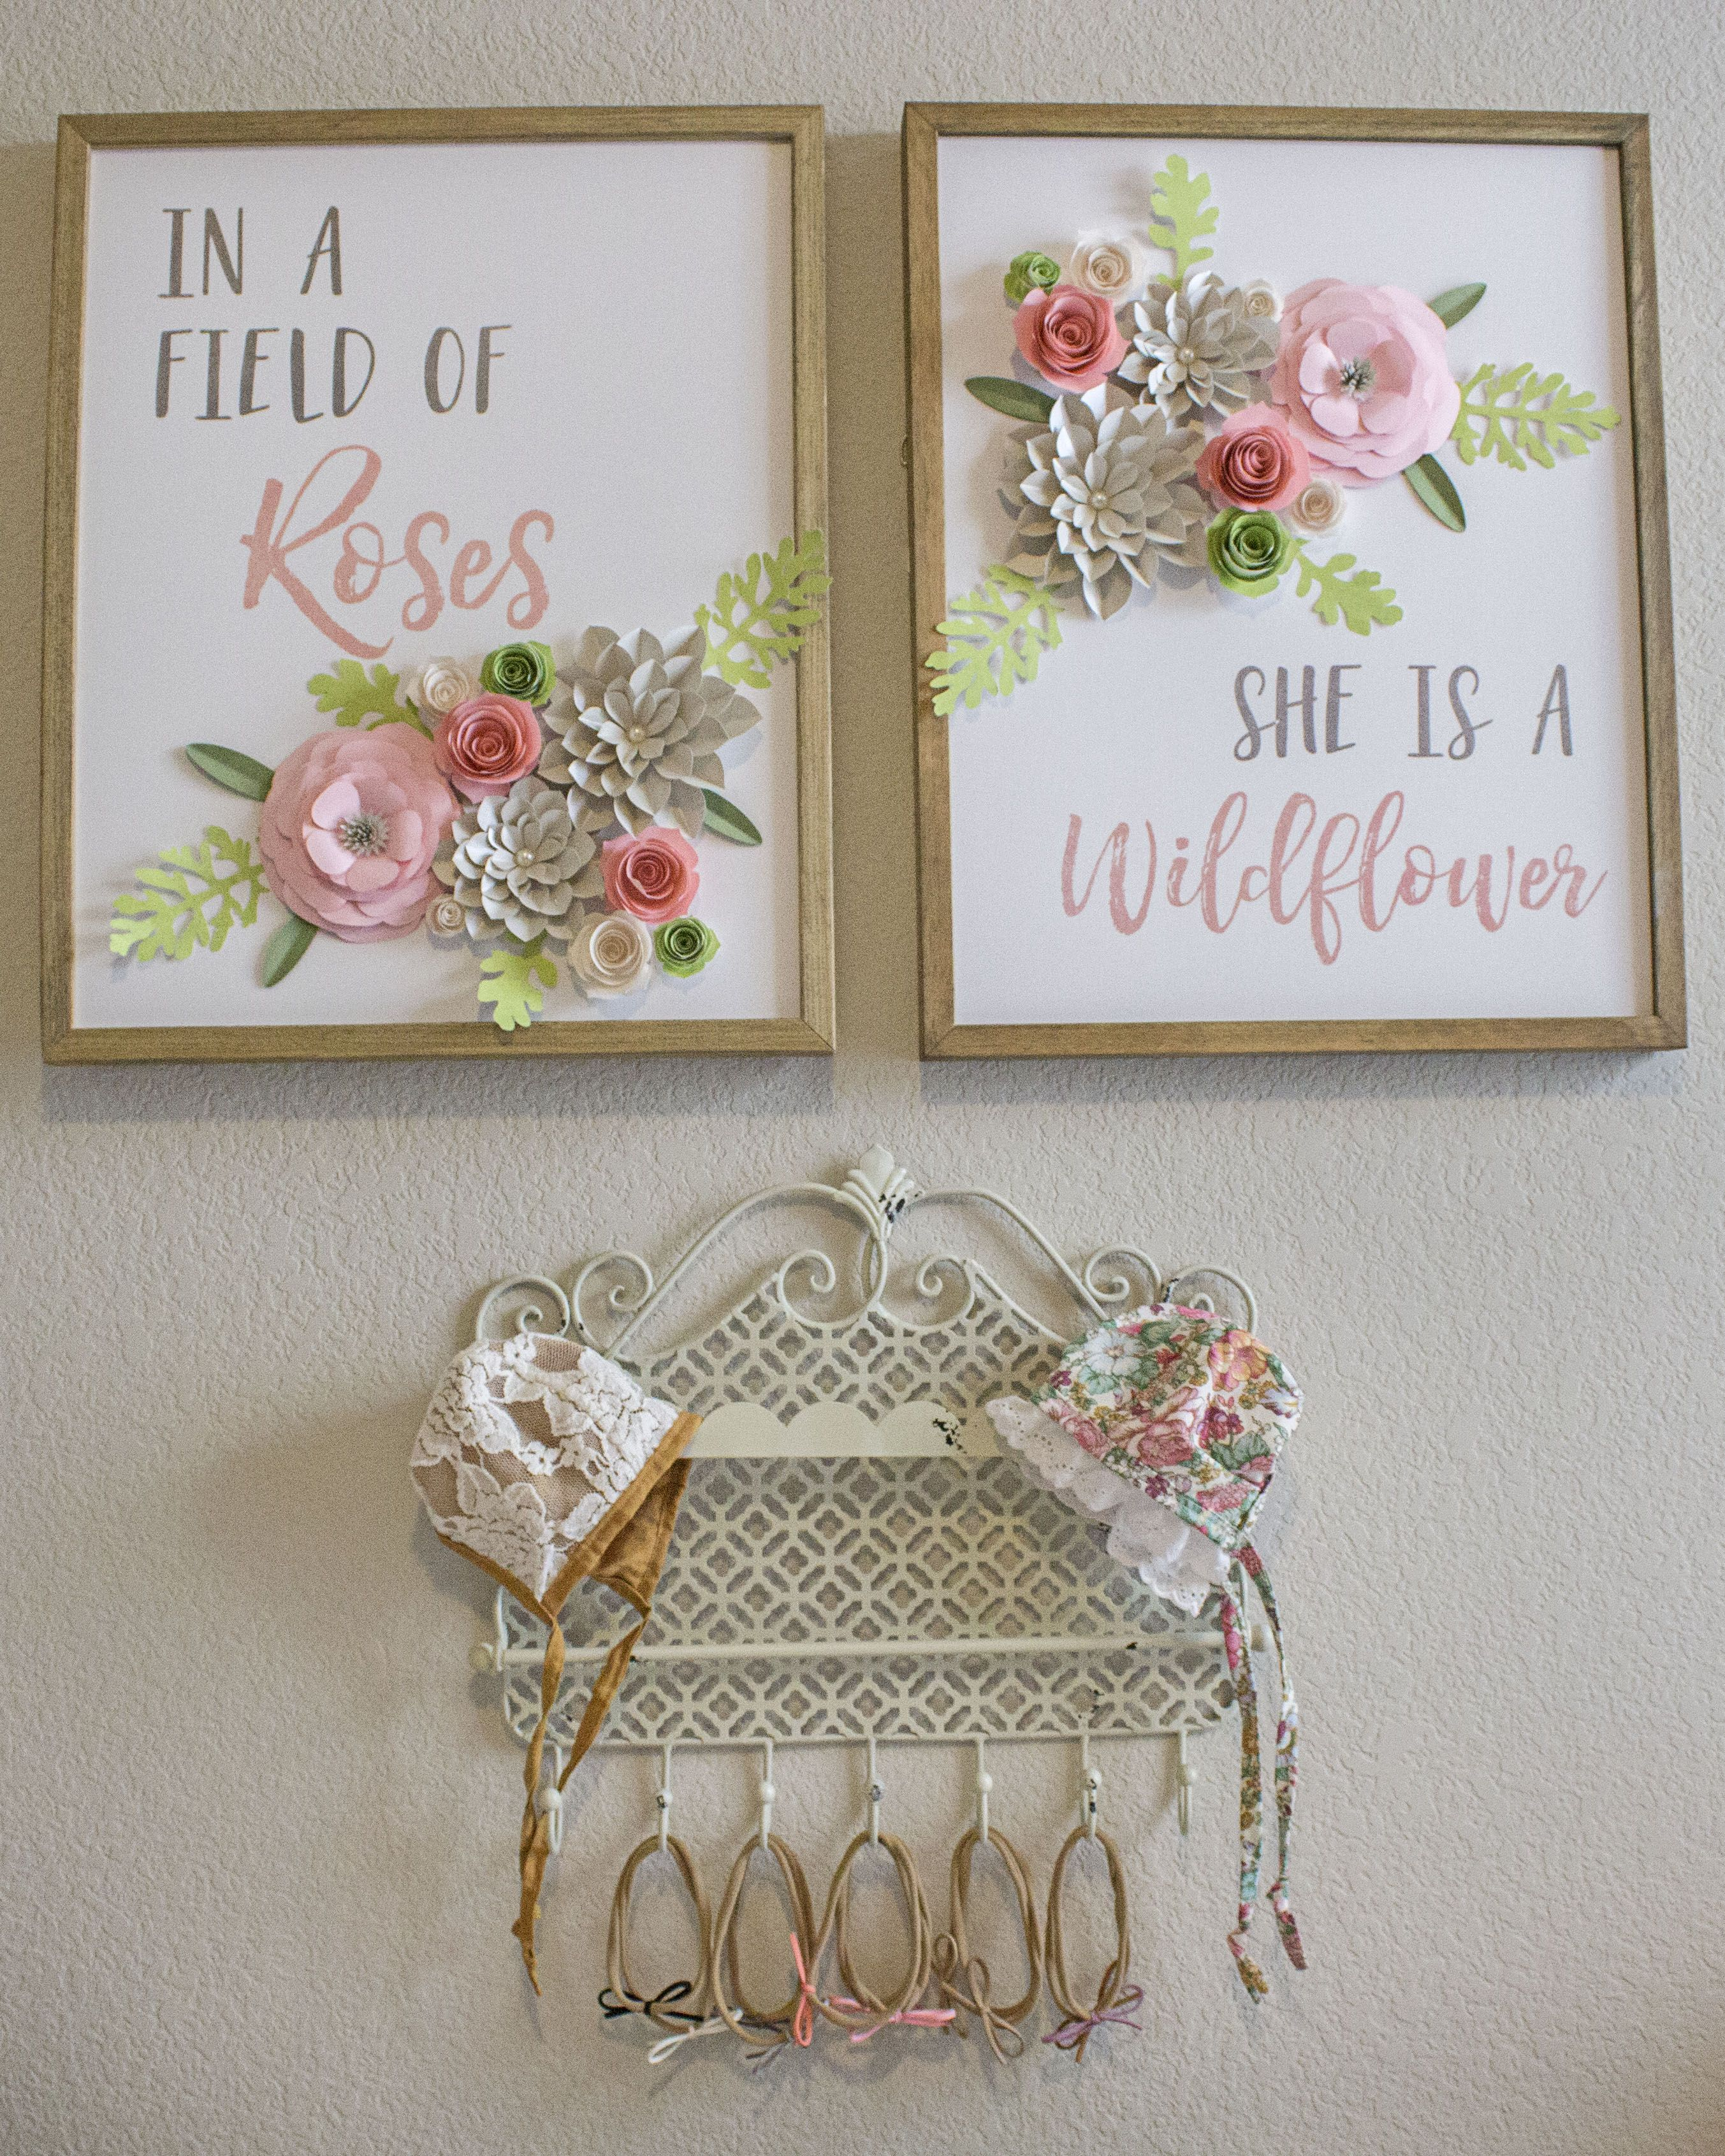 Posters from hobby lobby possibly spray paint frame silver and add